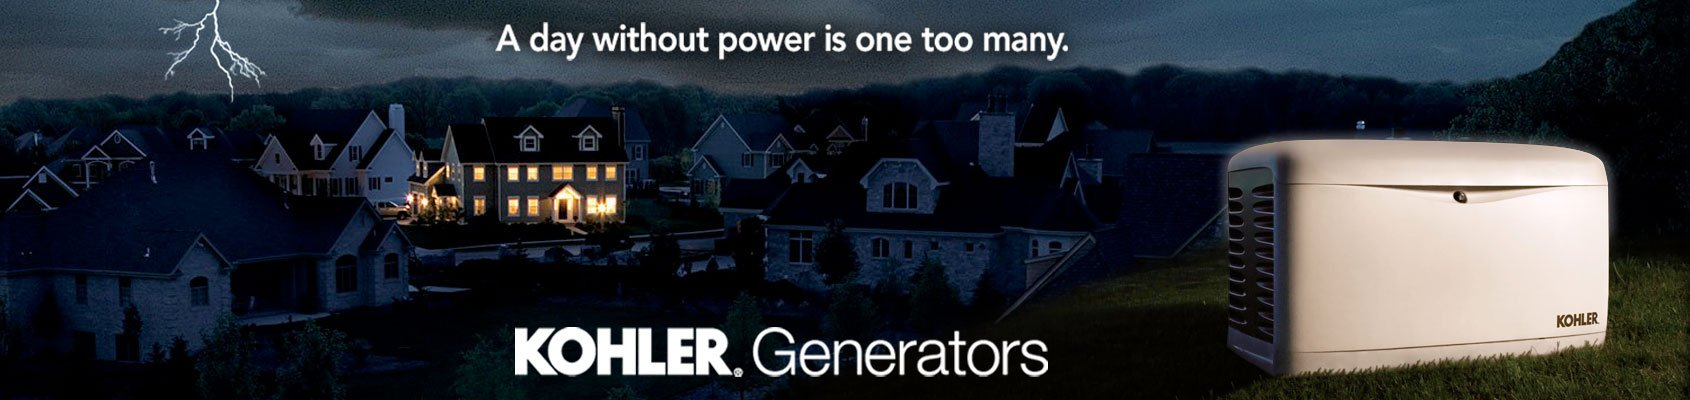 A day without power is one too many. Kohler® Generators